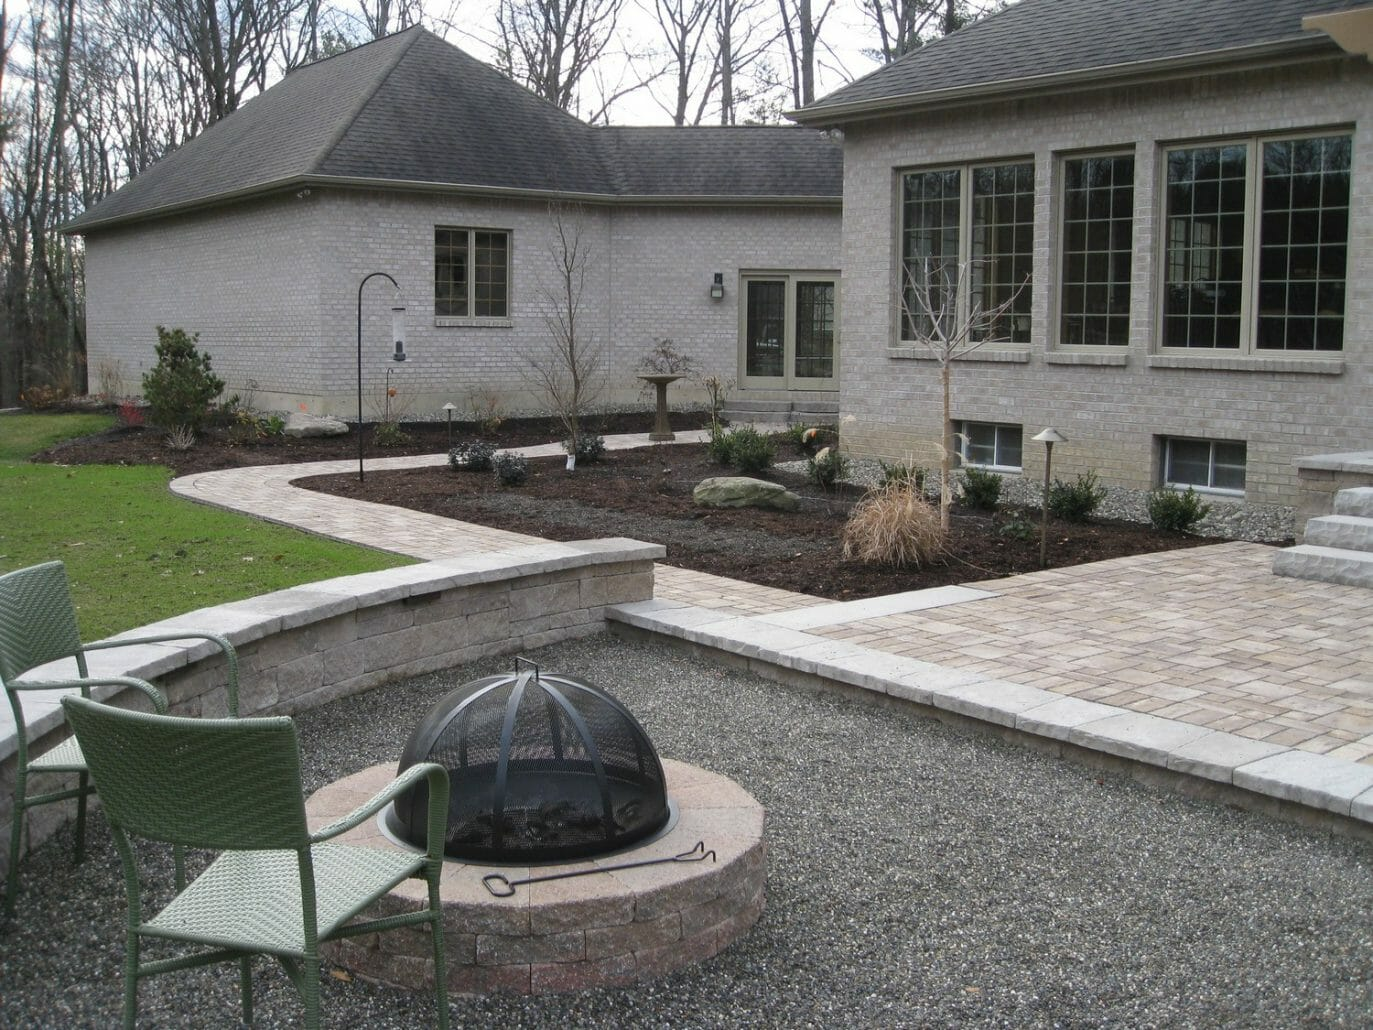 Wynantskill NY patio sidewalk landscape design 1373x1030 - Landscape Plan Installation and Project Management